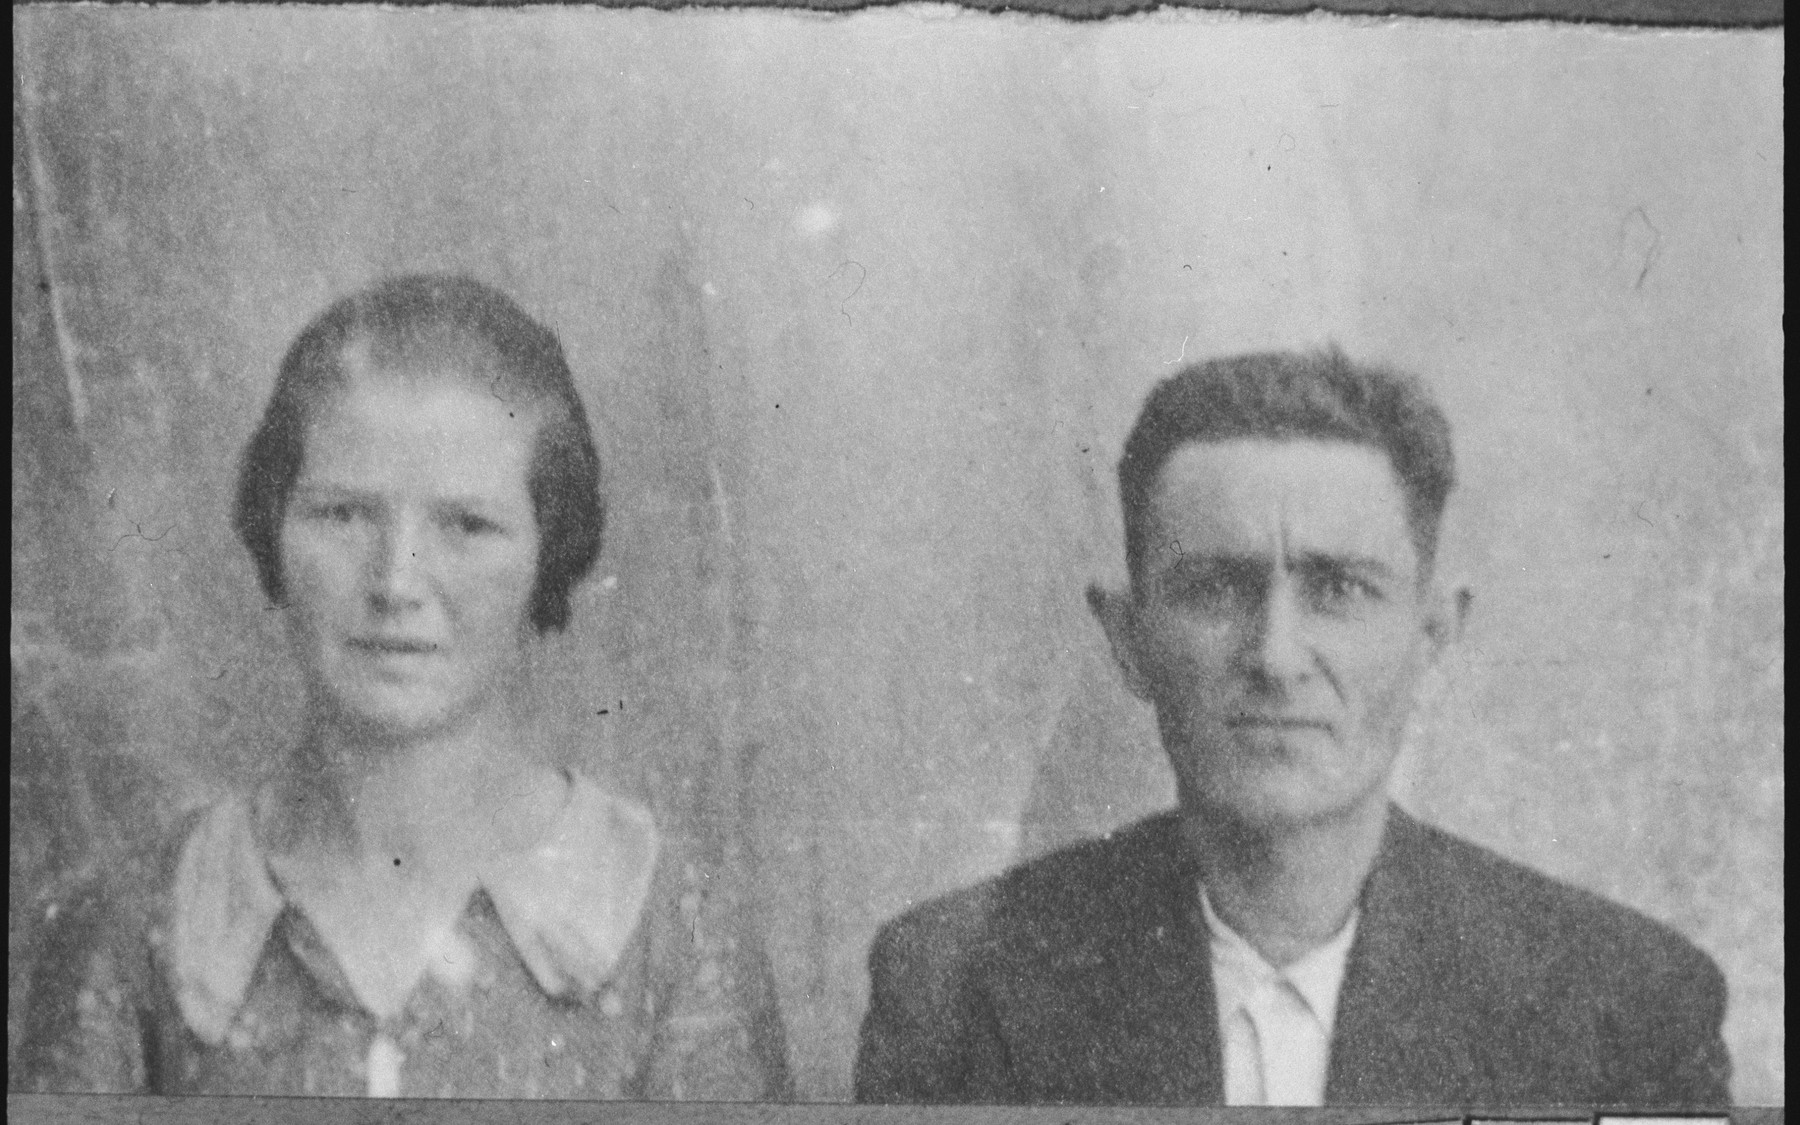 Portrait of Ely Ischach and his wife, Oru.  He was a rag dealer.  They lived at Asadbegova 11 in Bitola.